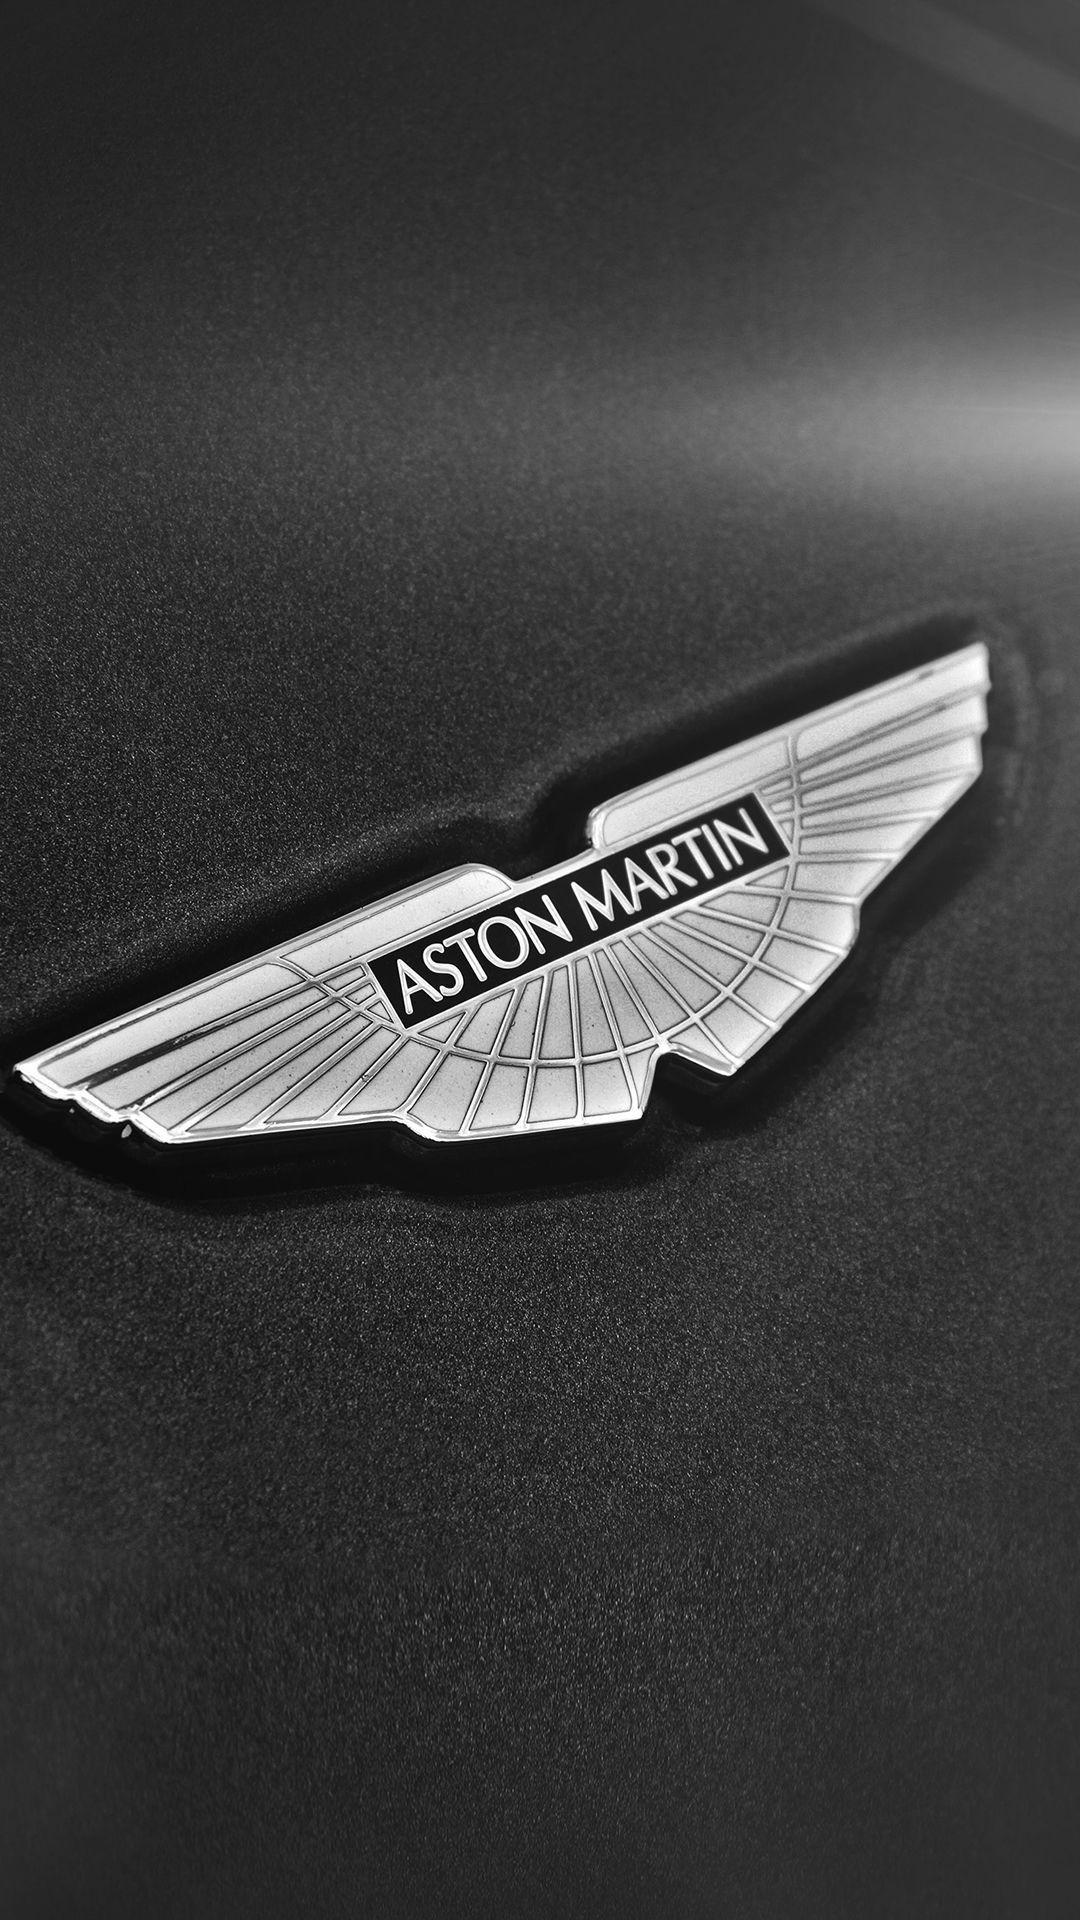 Simple Aston Martin Logo Dark Backgrounds iPhone 6 wallpapers